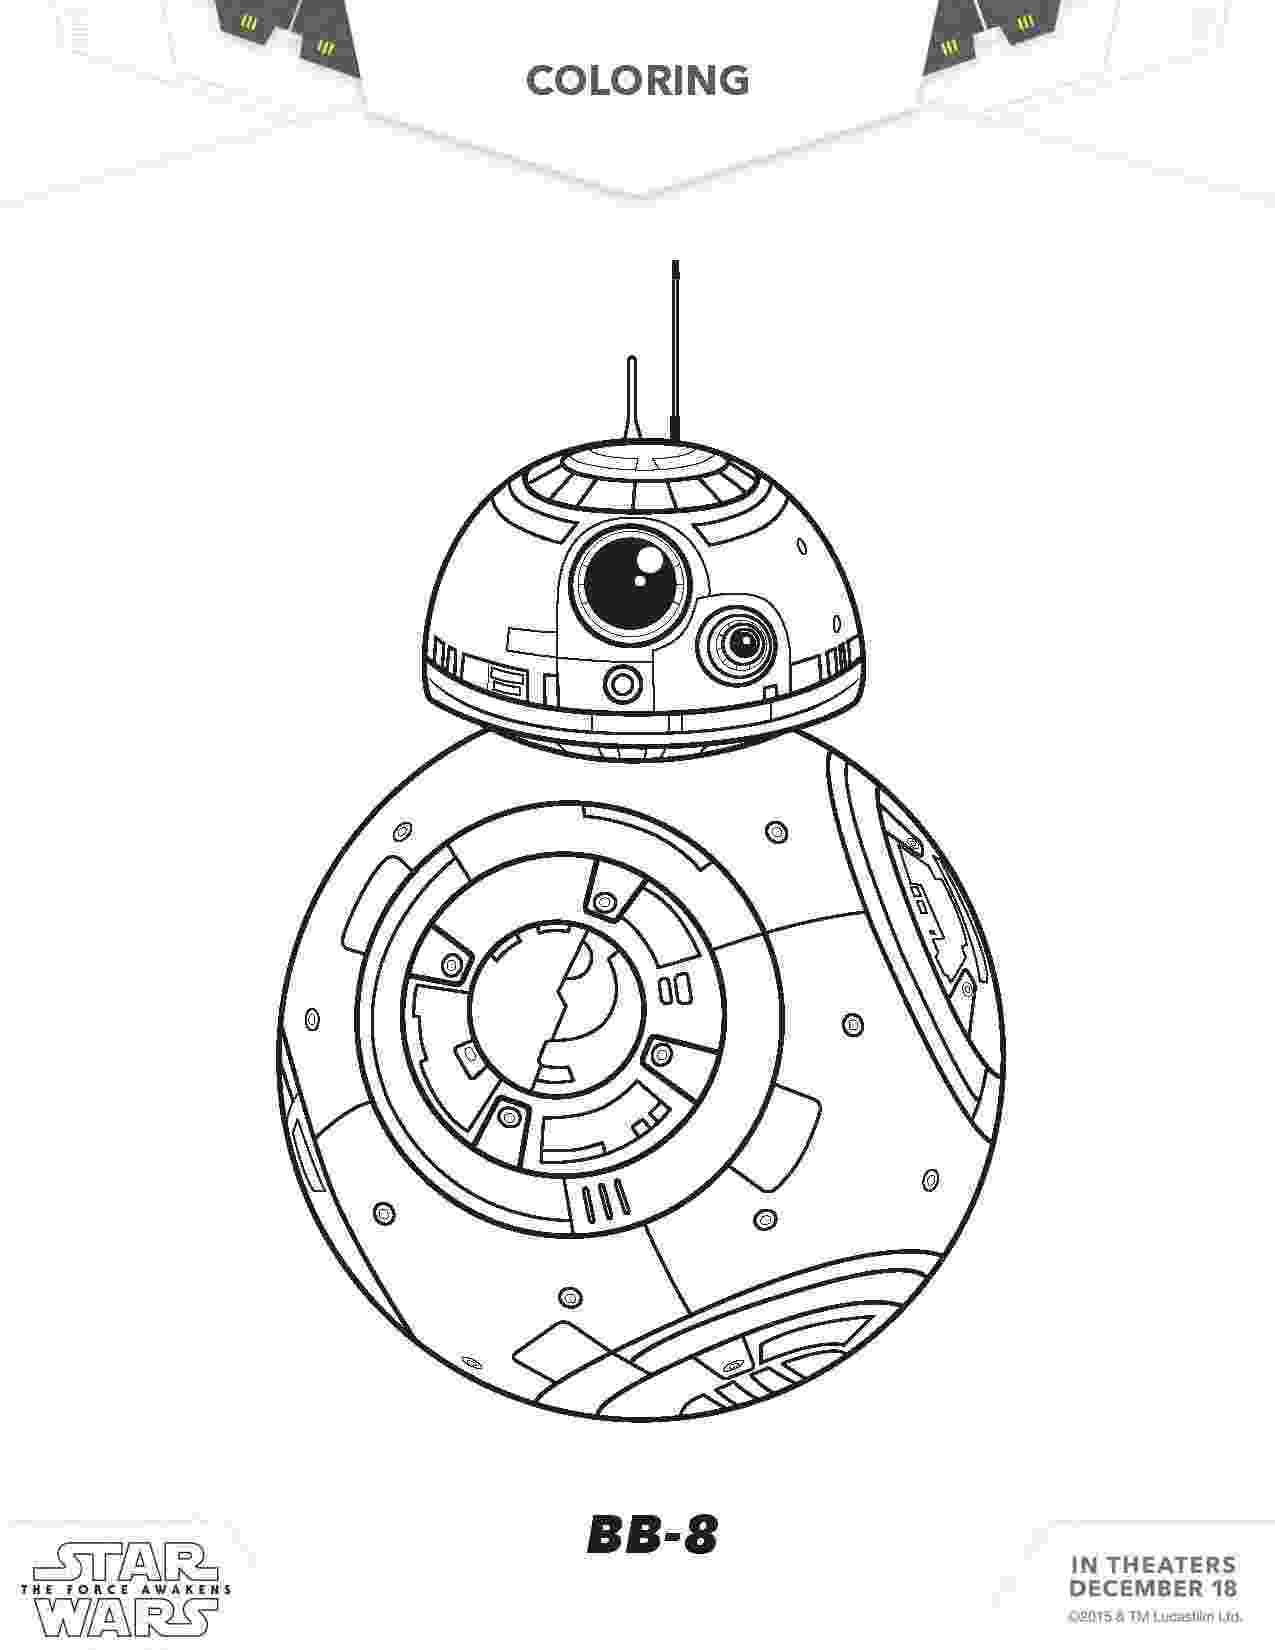 star wars free coloring pages star wars coloring pages the force awakens coloring pages pages wars star free coloring